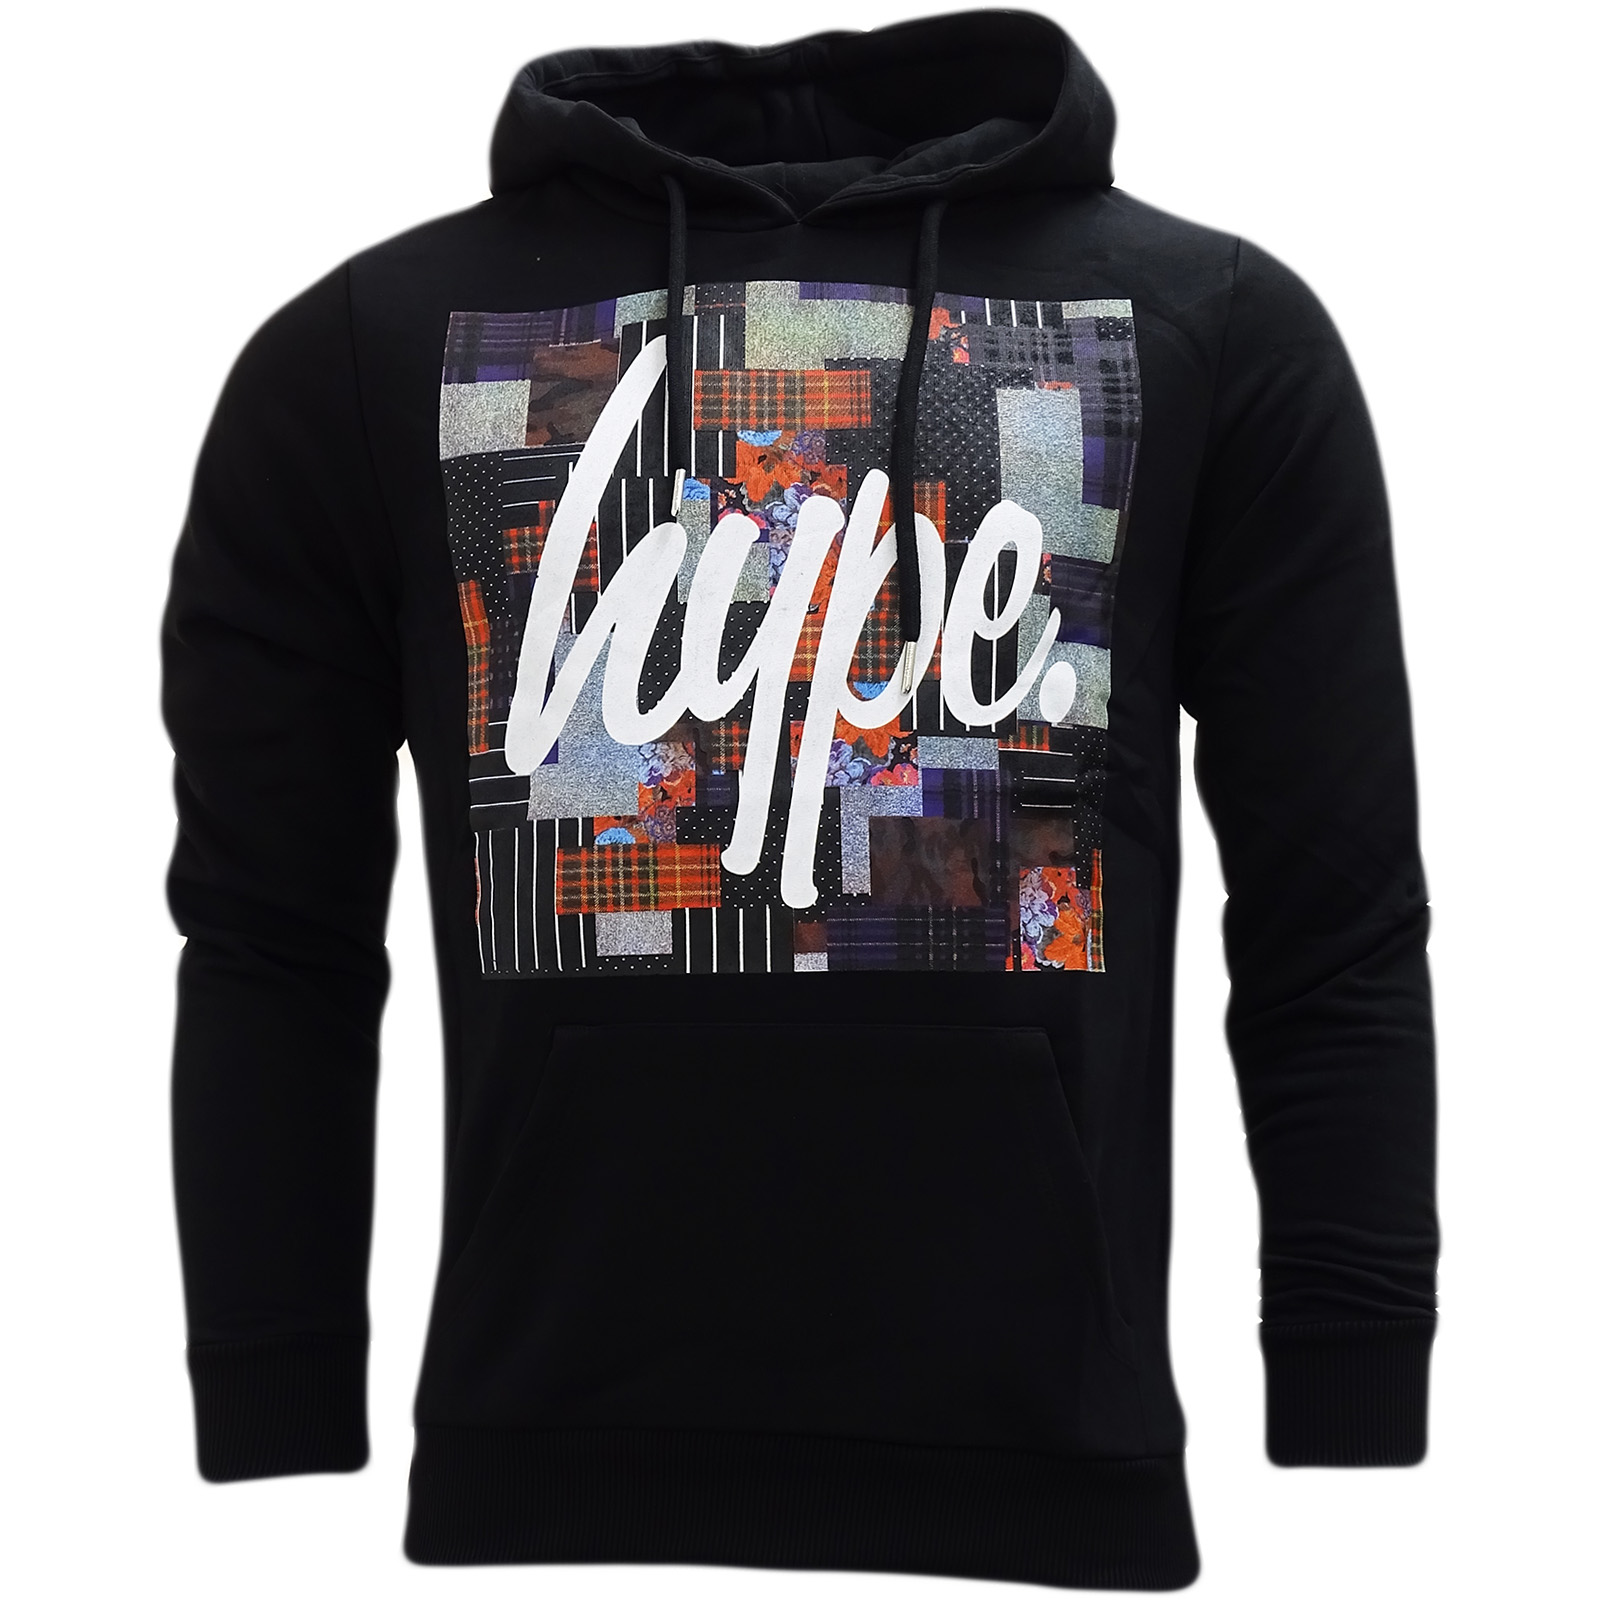 Hype Black Overhead Hooded Sweatshirt Jumper Patch Square -